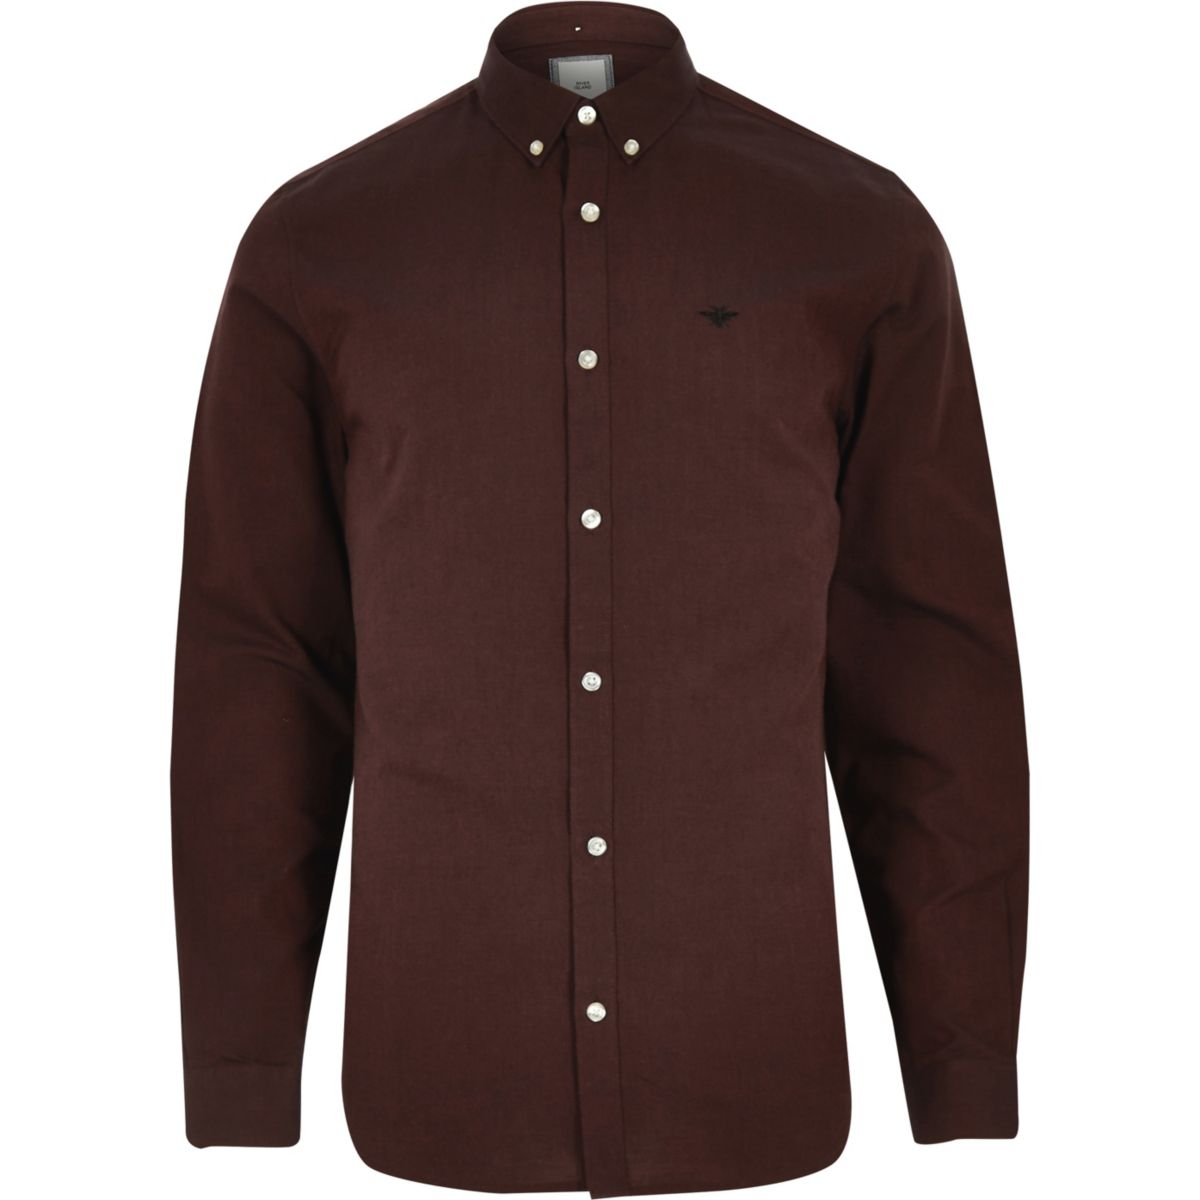 Dark red wasp embroidered Oxford shirt